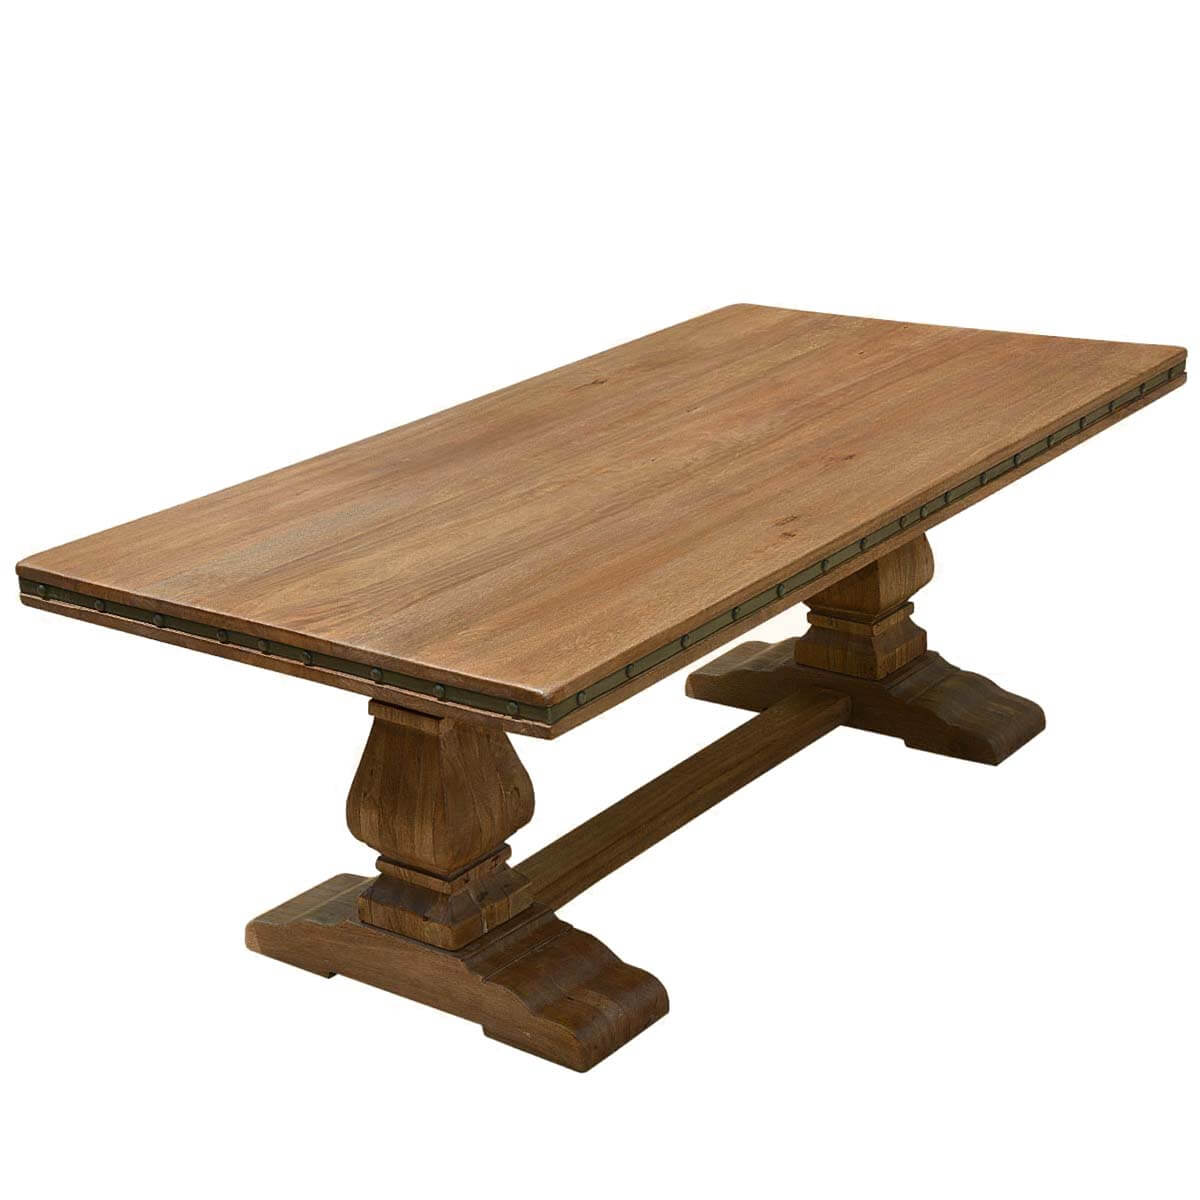 Rustic solid wood trestle pedestal base harvest dining table for Dining table base